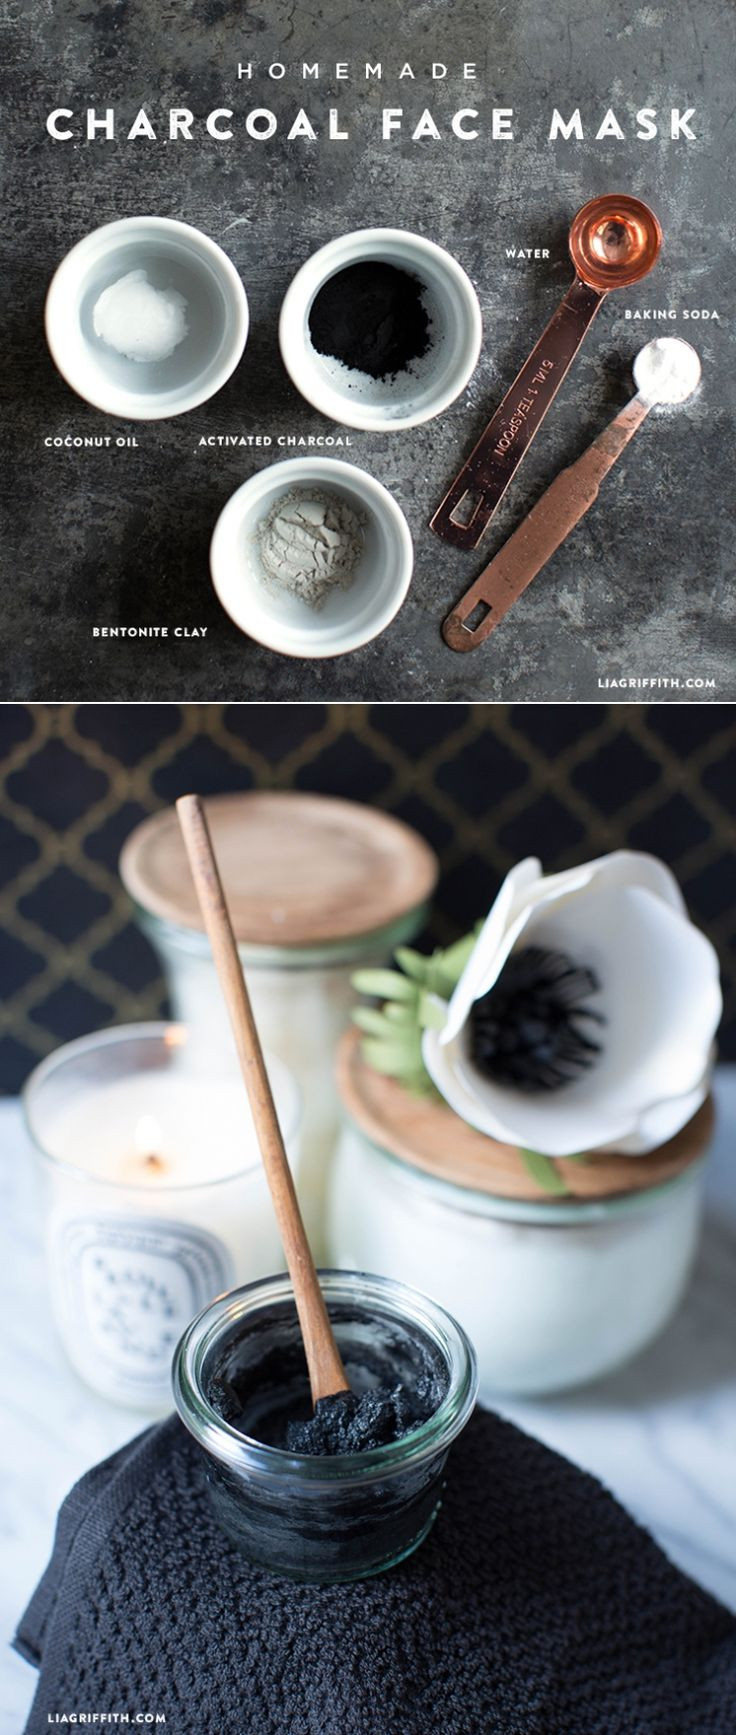 Best ideas about DIY Charcoal Mask Recipe . Save or Pin Homemade Charcoal Face Mask Recipe Now.